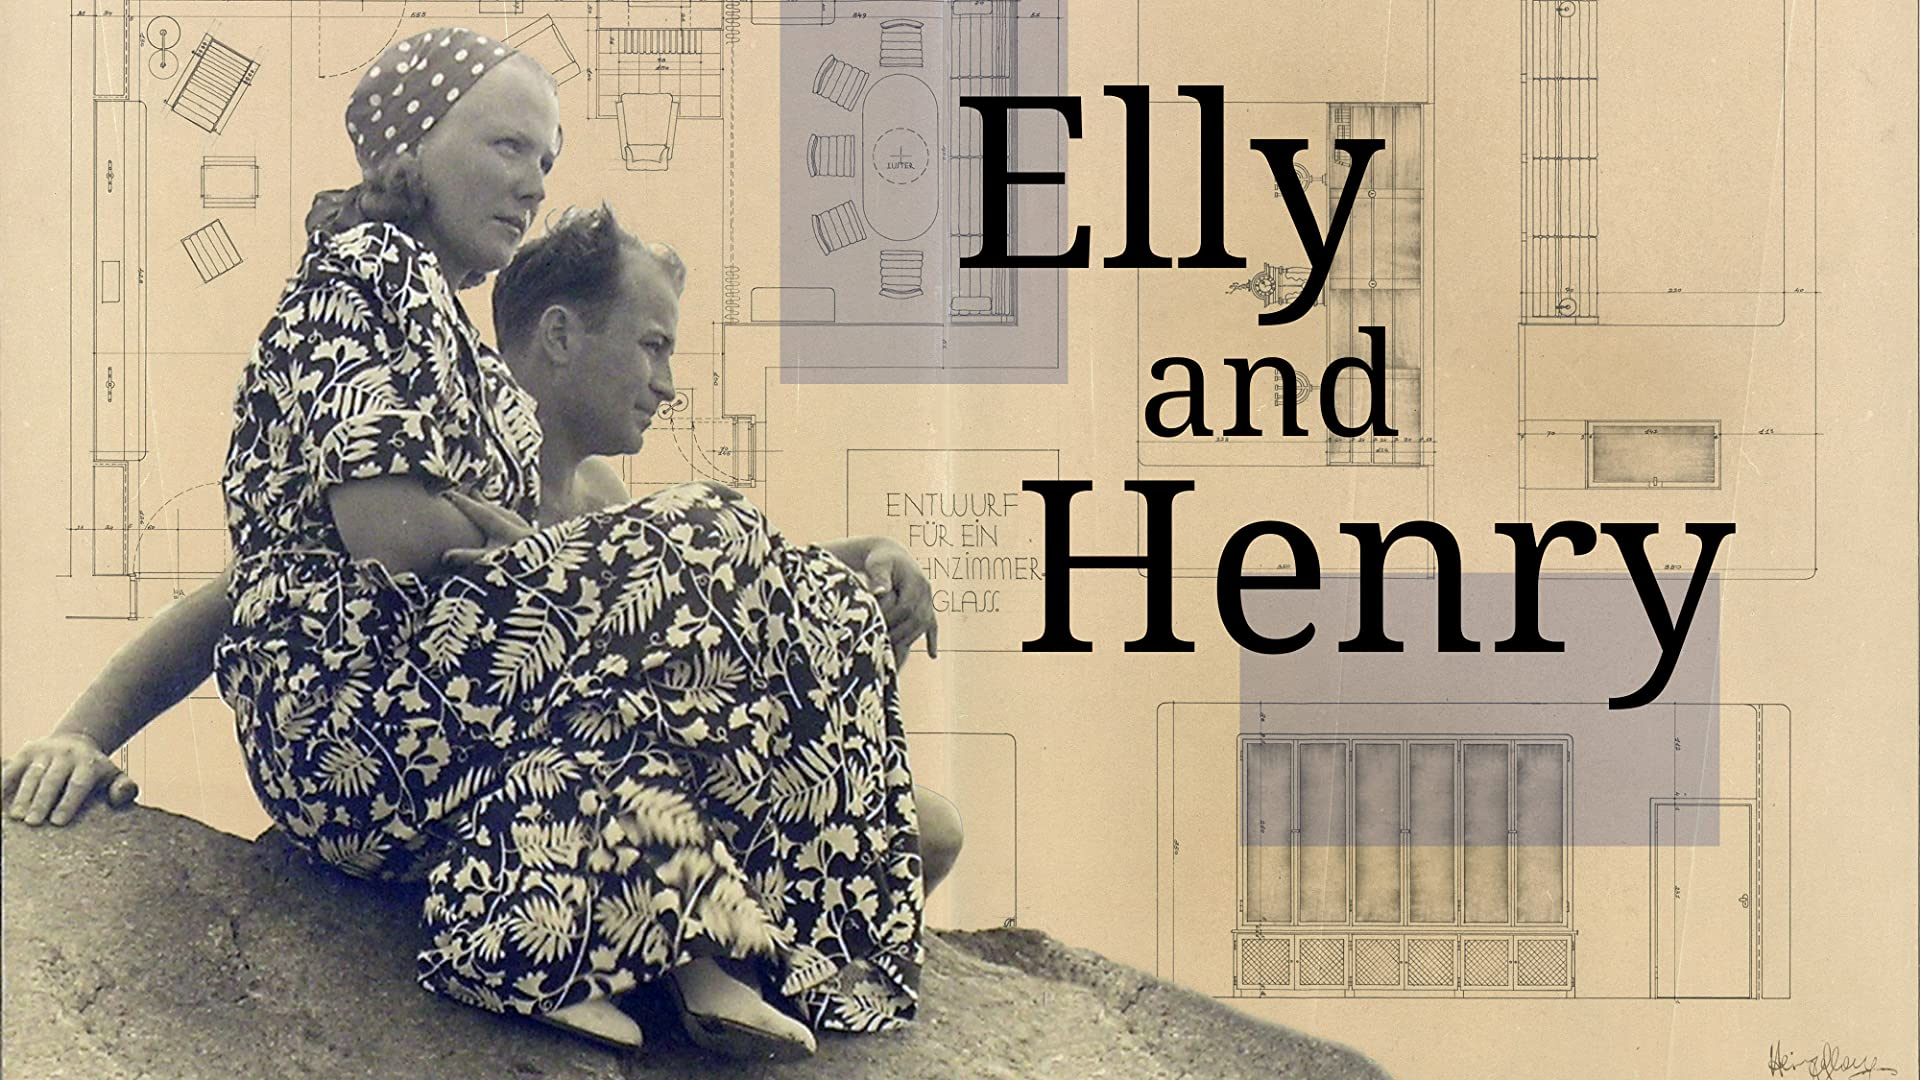 Elly and Henry